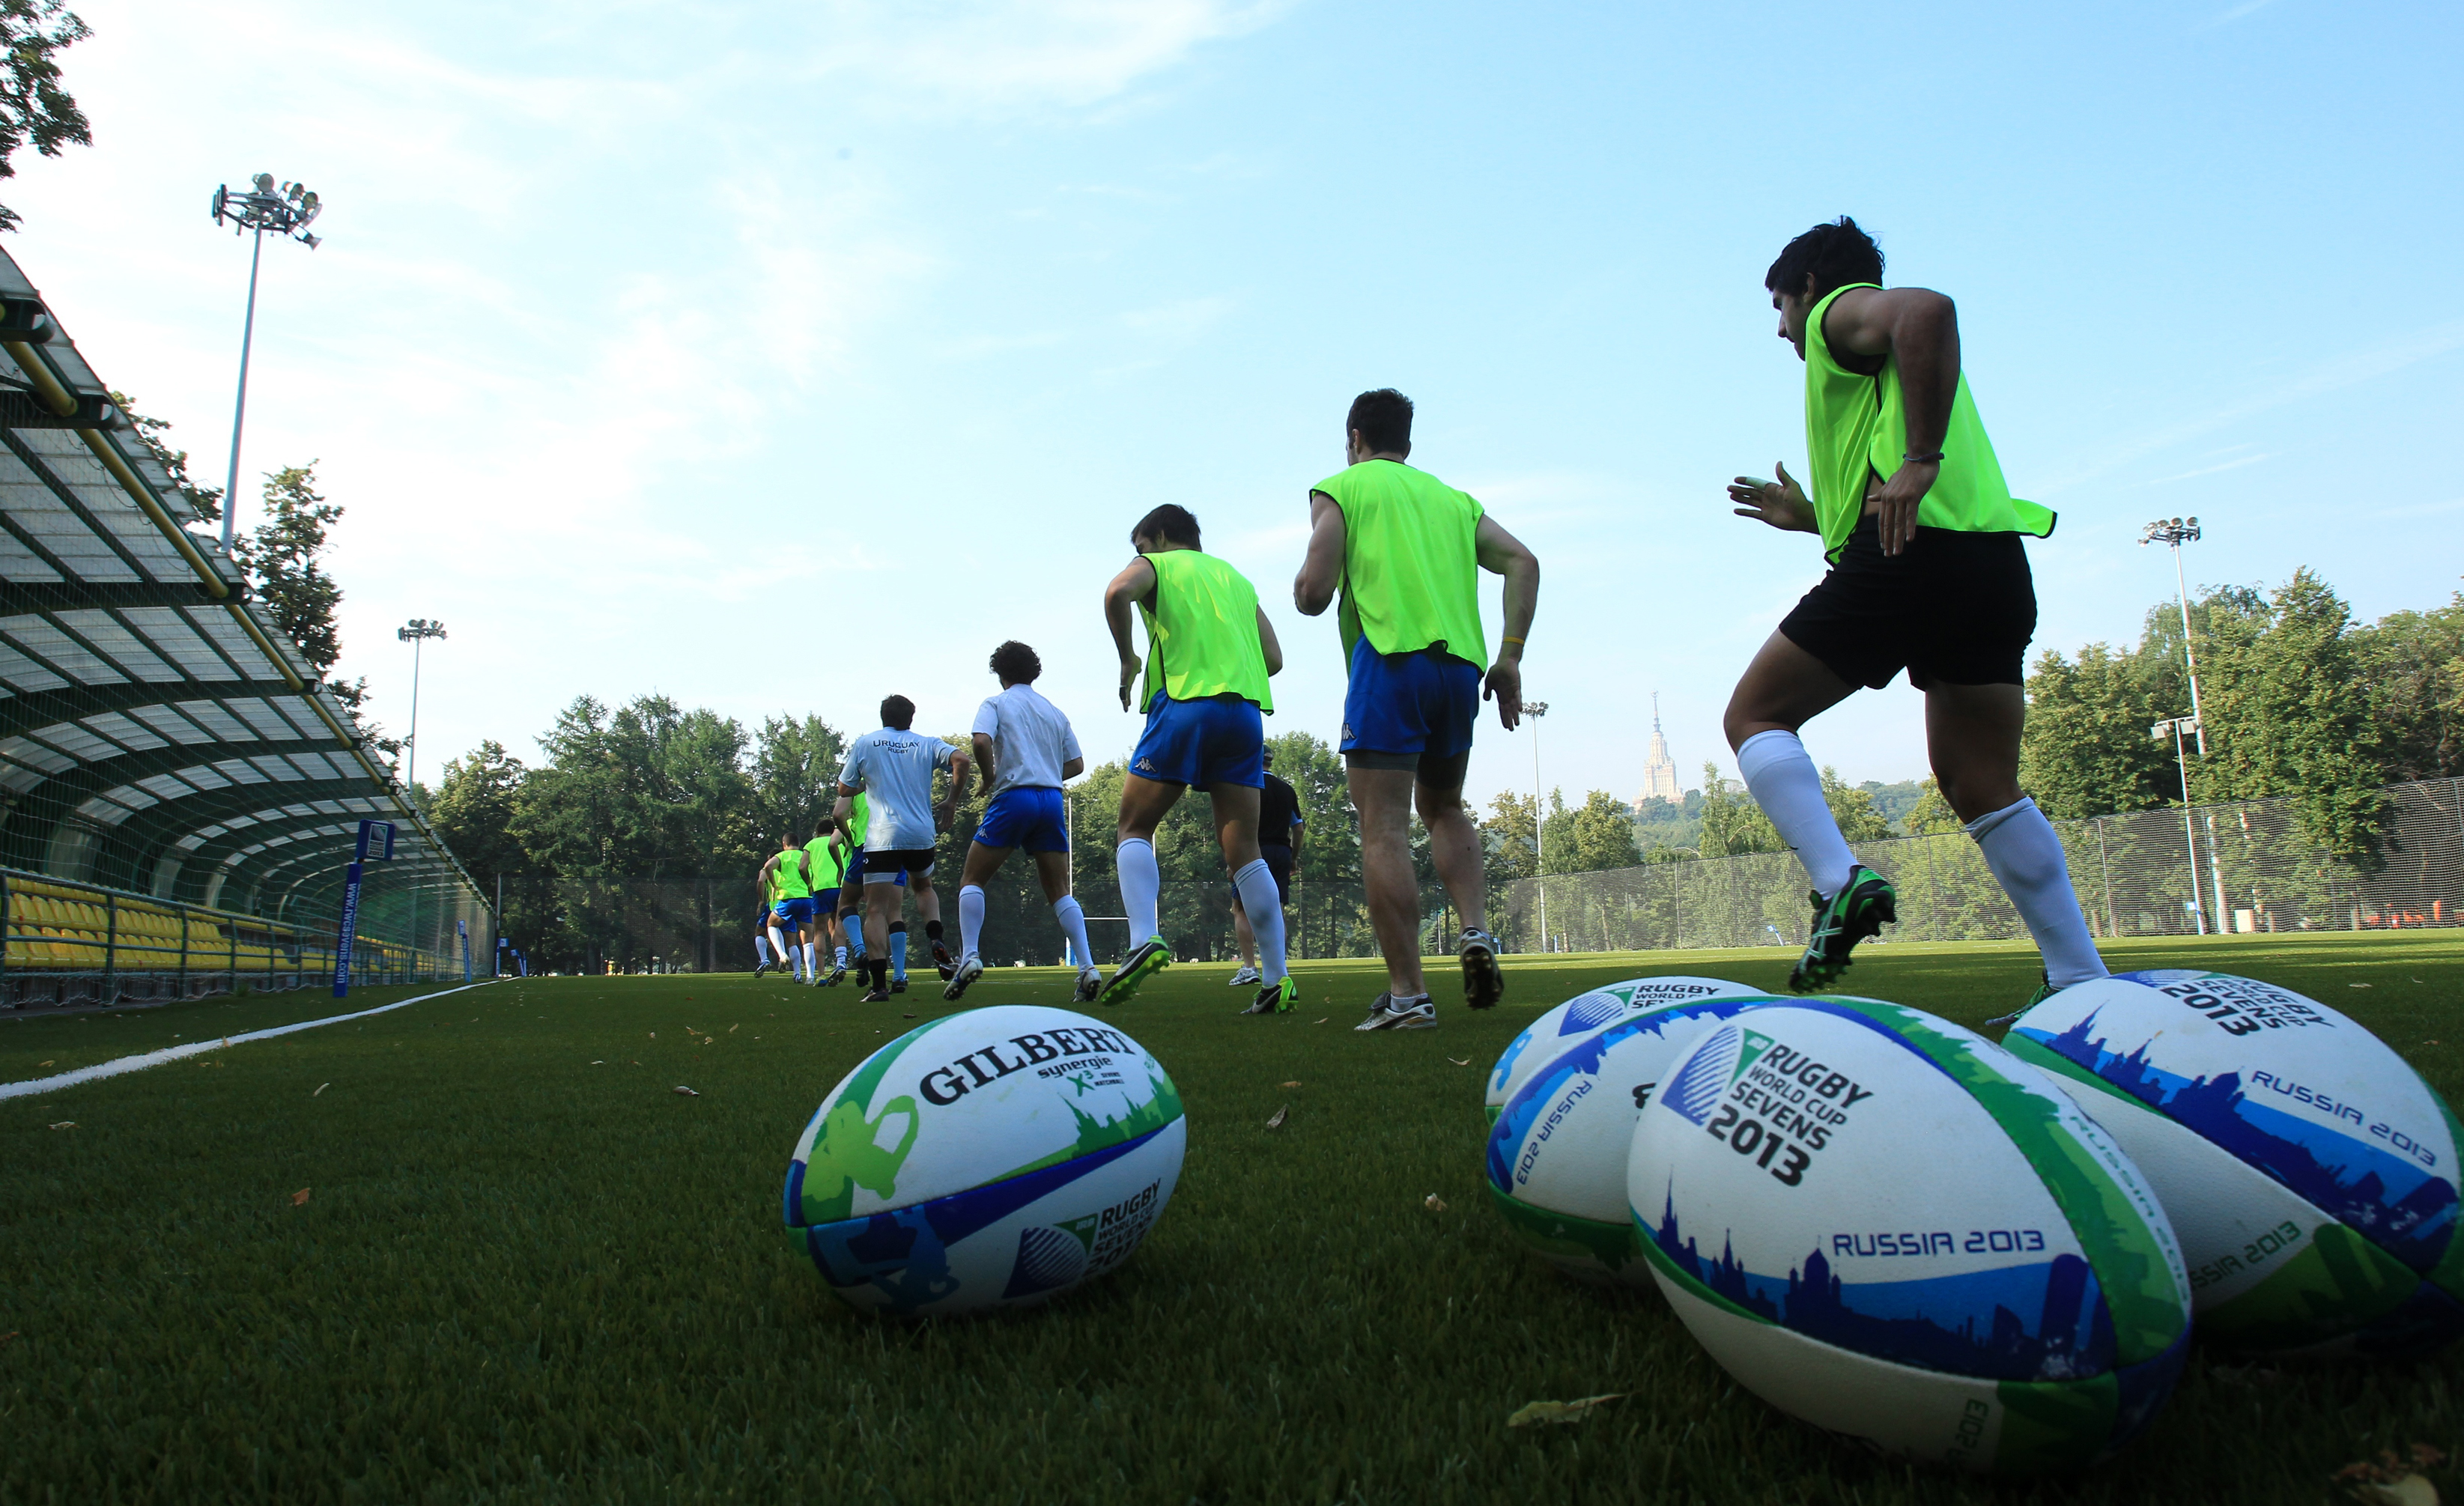 Rugby World Cup Sevens - Moscow 2013